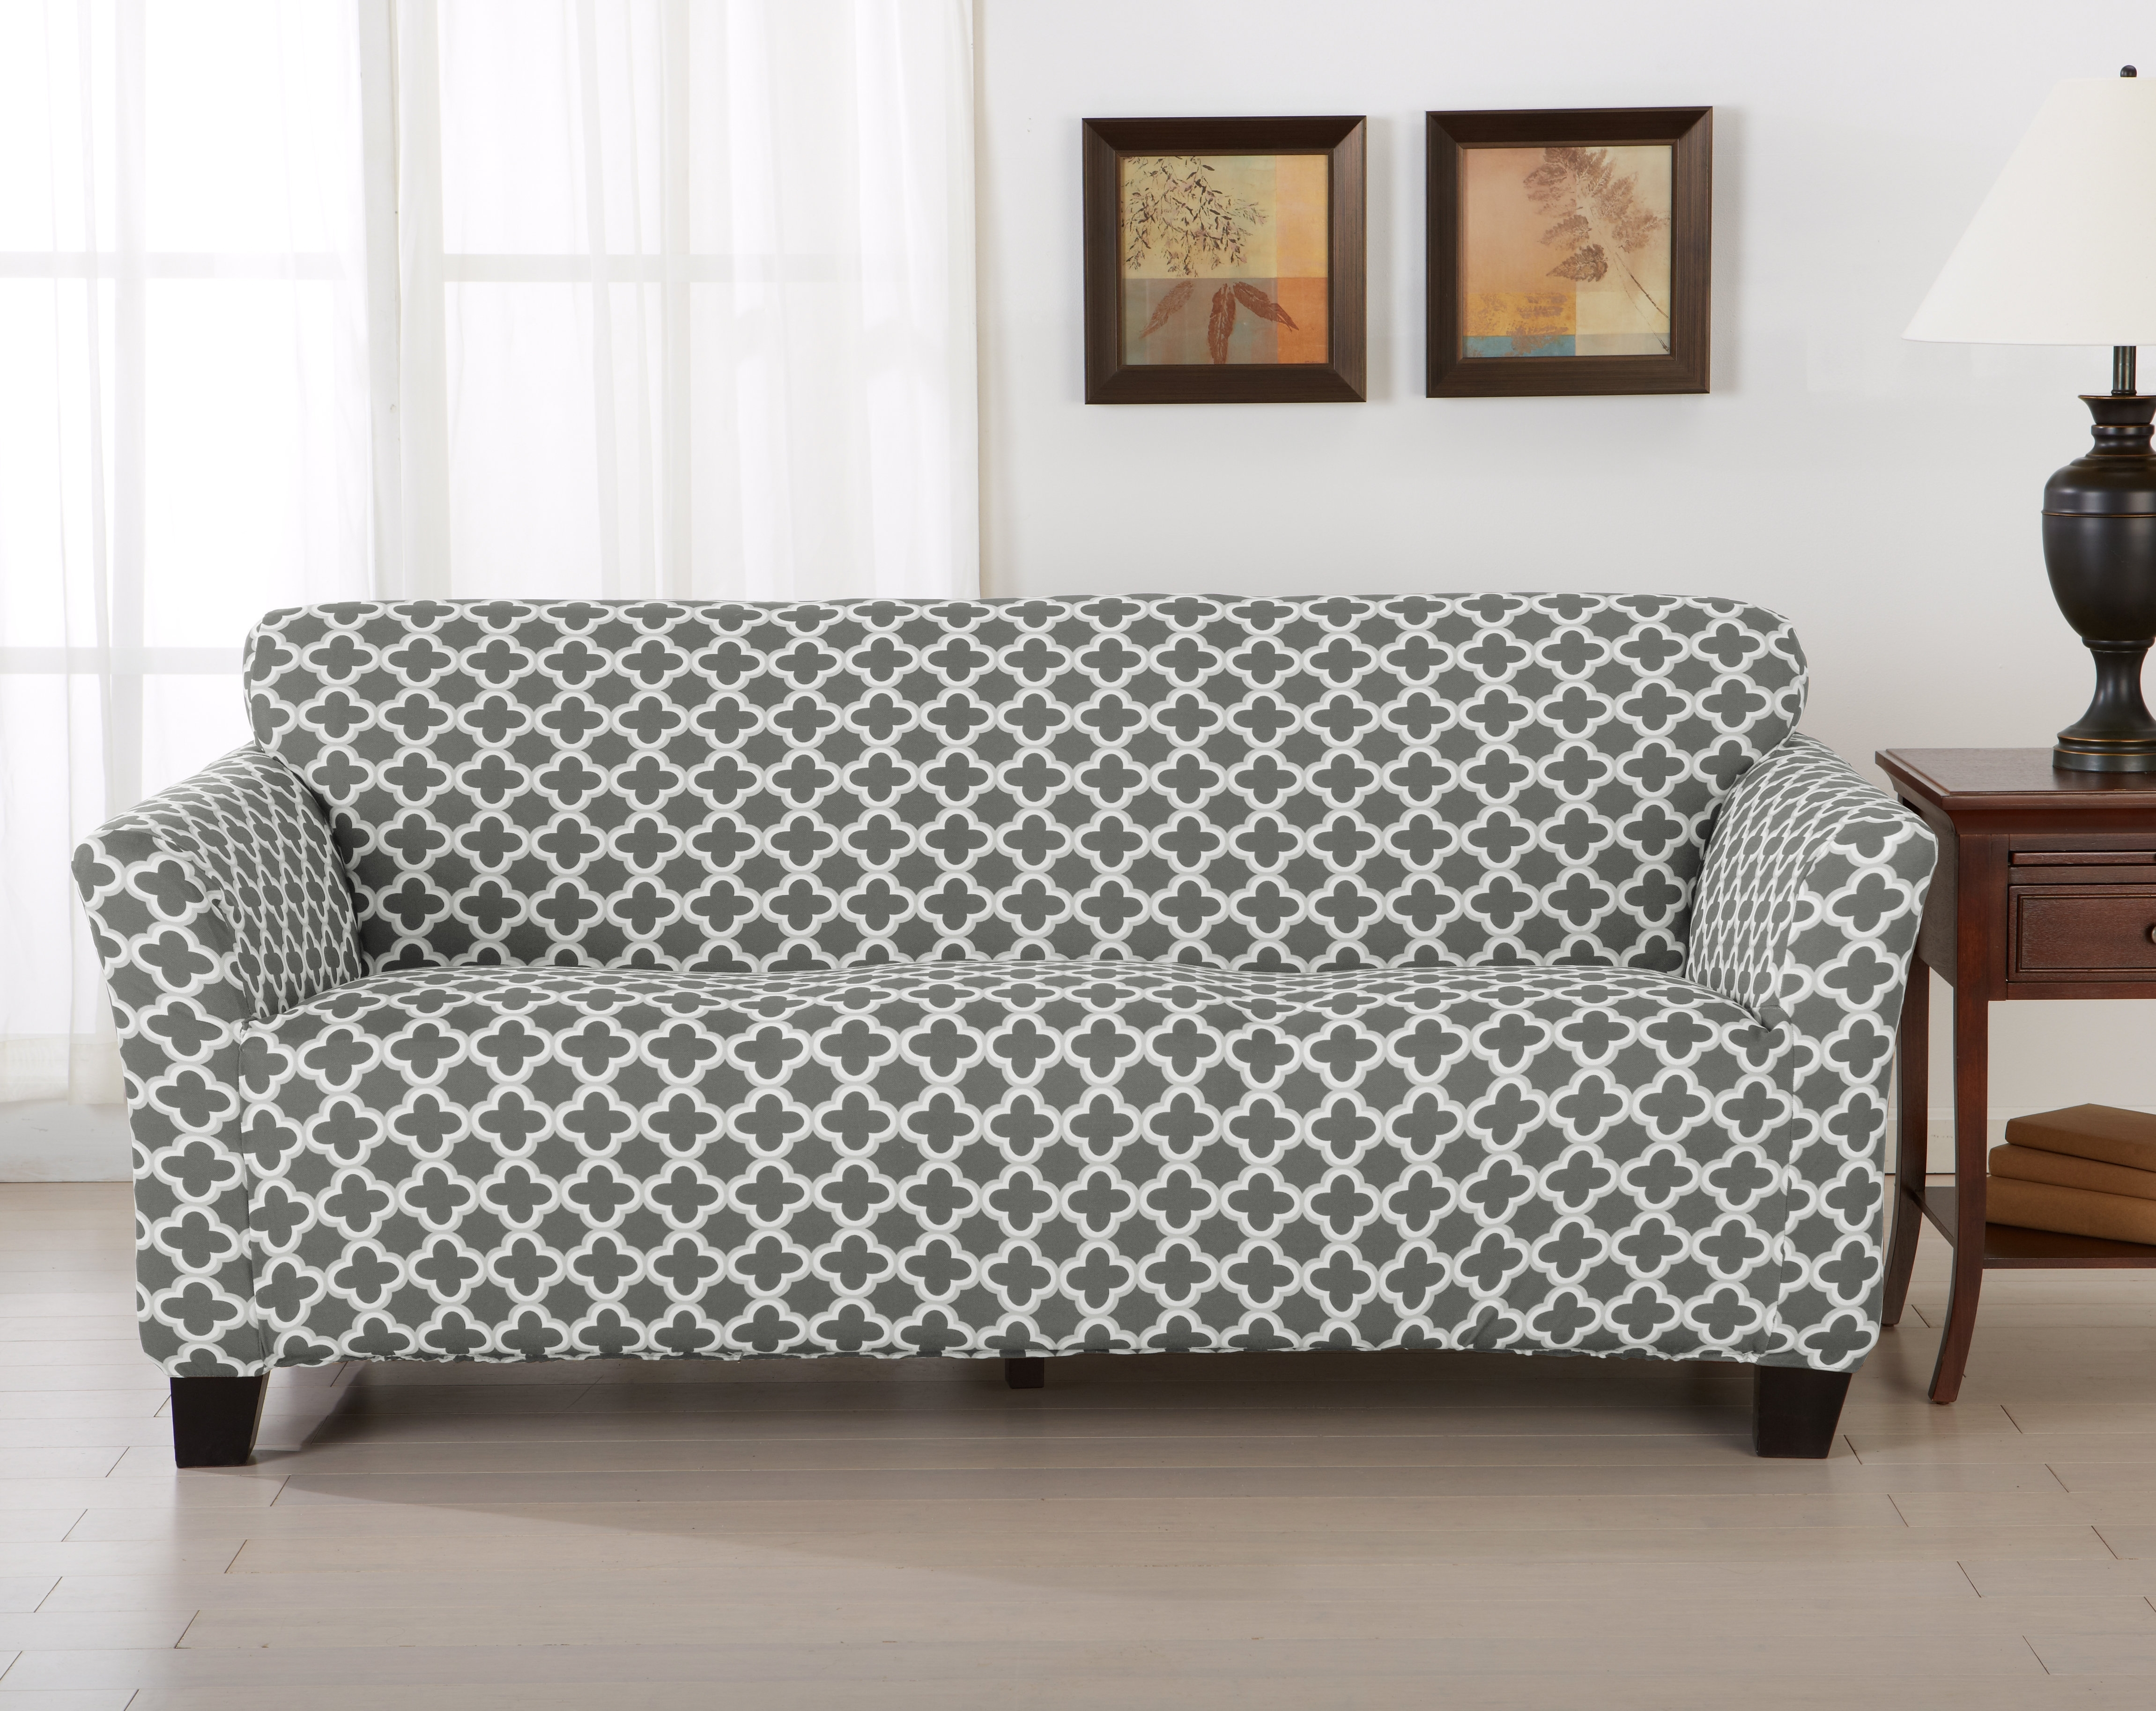 Most Popular Pearson Grey Slipcovered Side Chairs In Home Fashion Designs Brenna Box Cushion Sofa Slipcover & Reviews (#8 of 20)